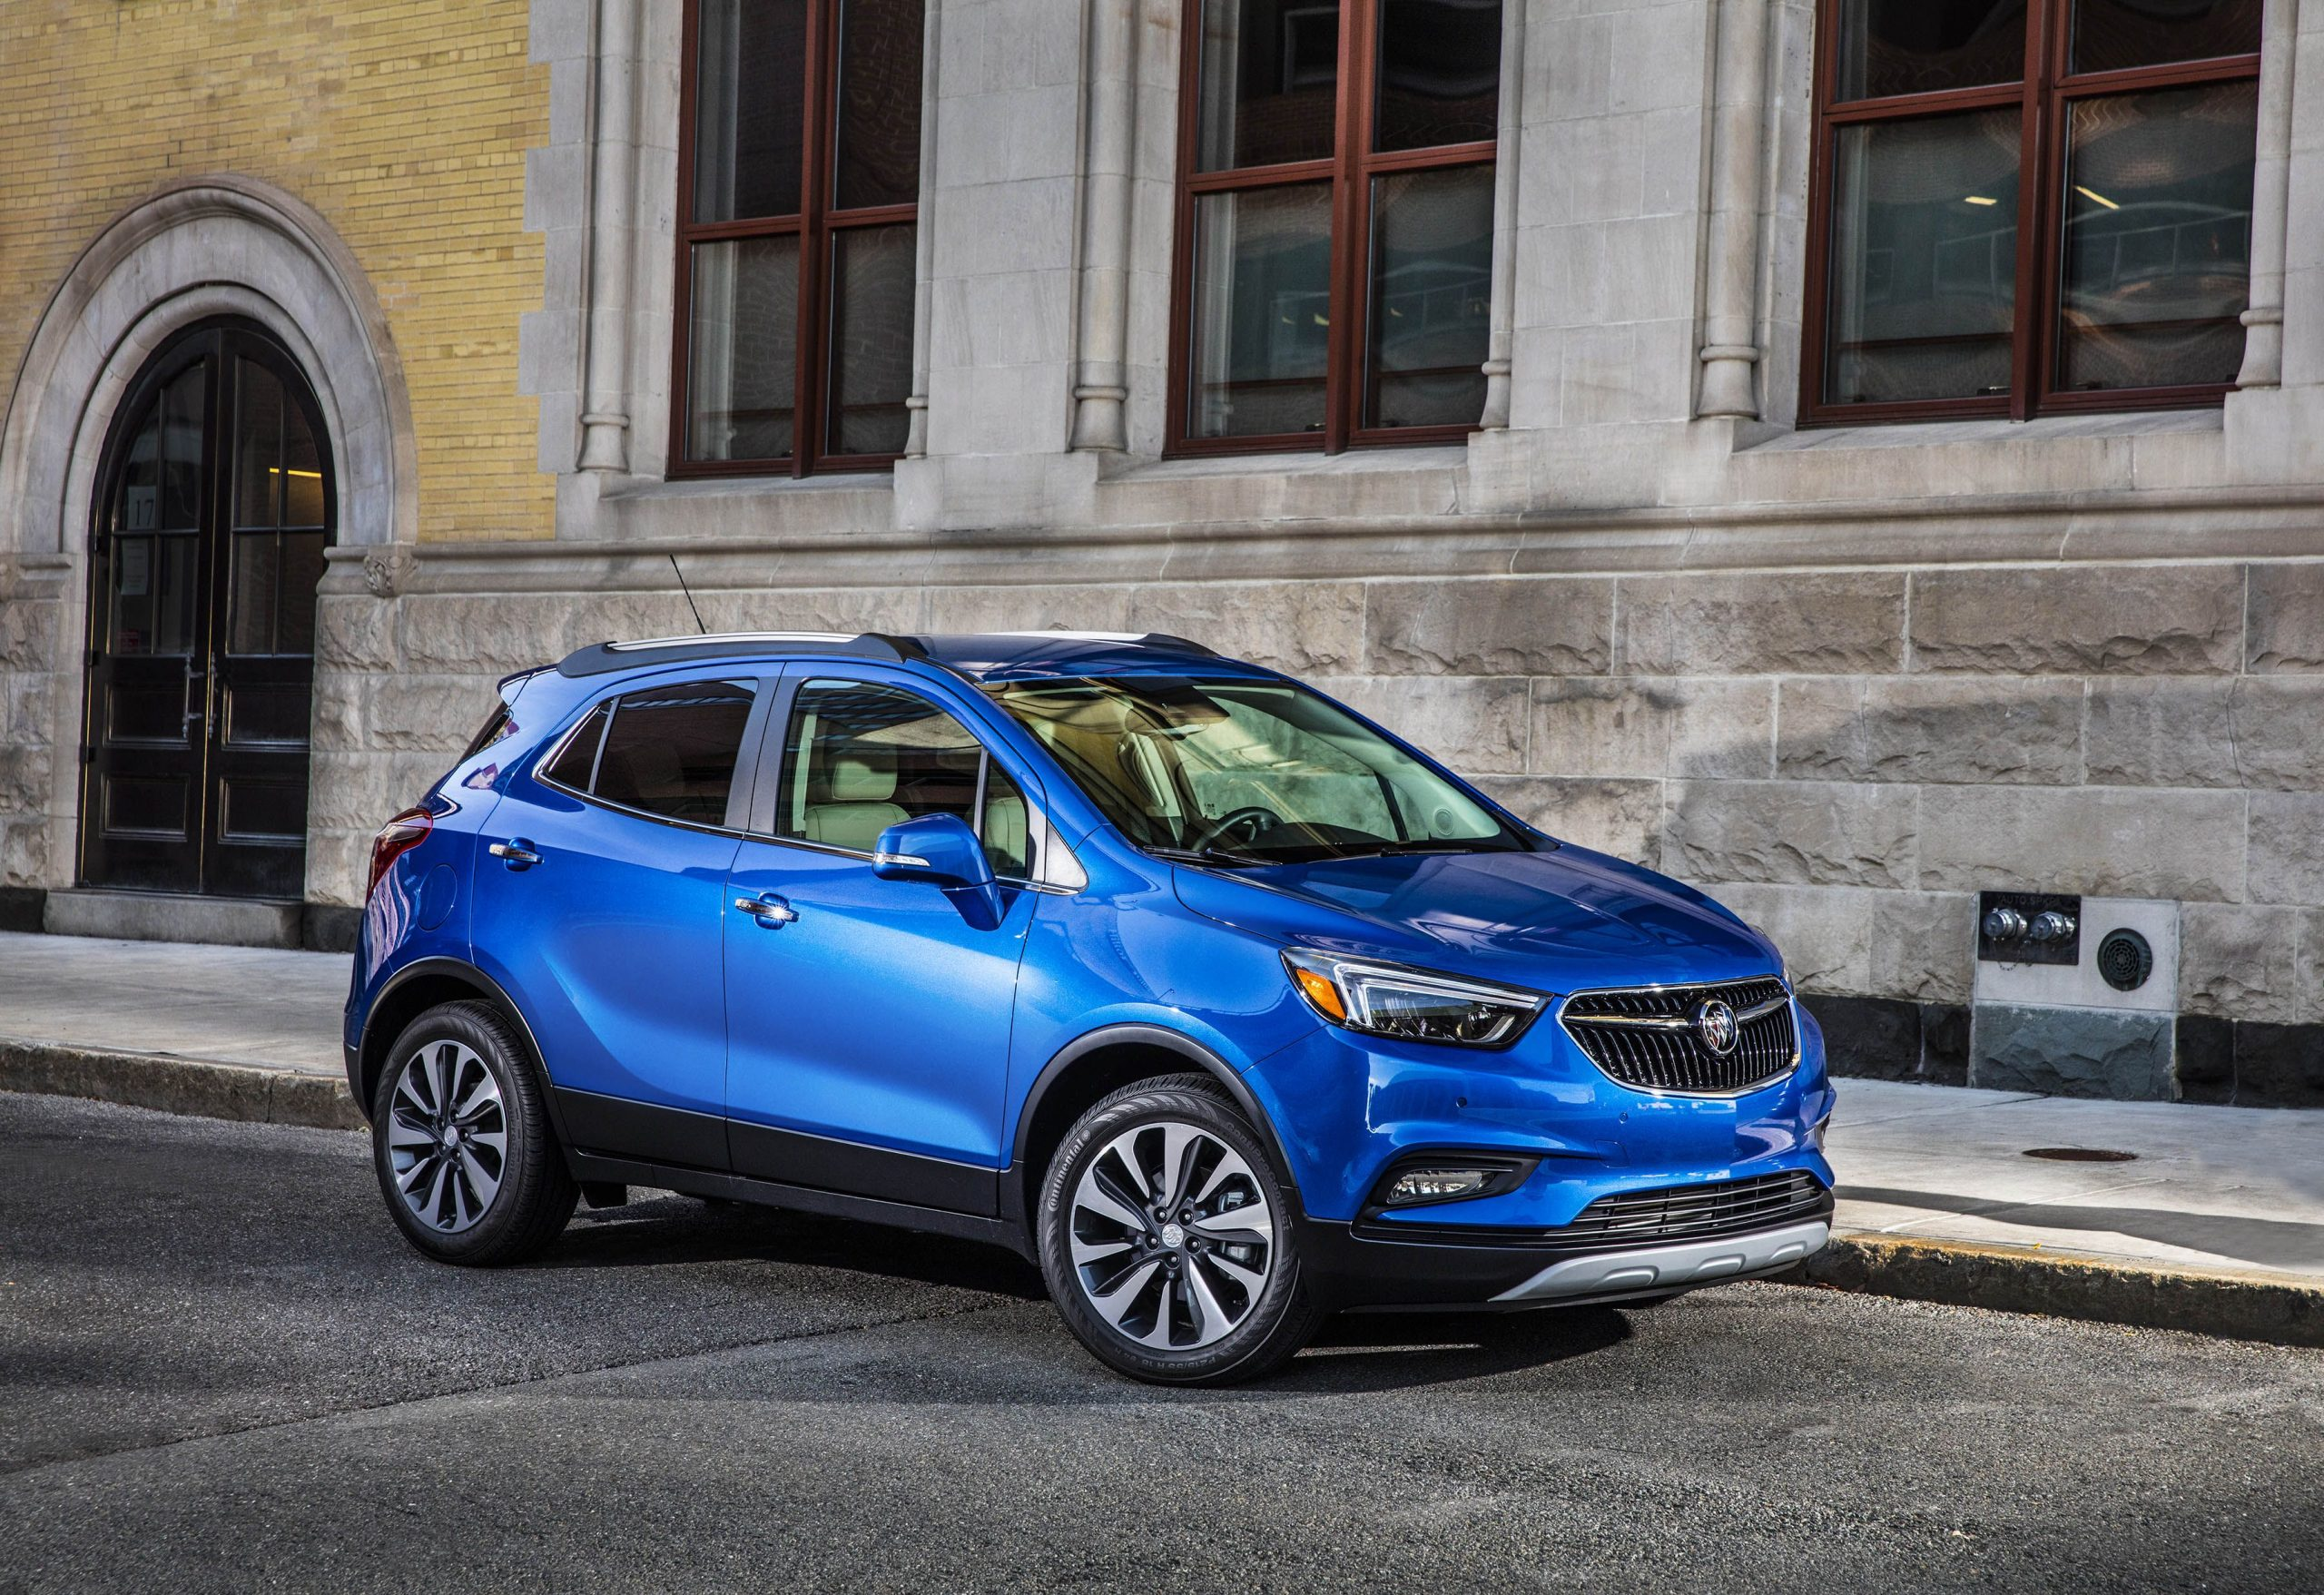 2020 Buick Encore Review, Pricing, And Specs 2022 Buick Encore Essence Price, Interior, Dimensions